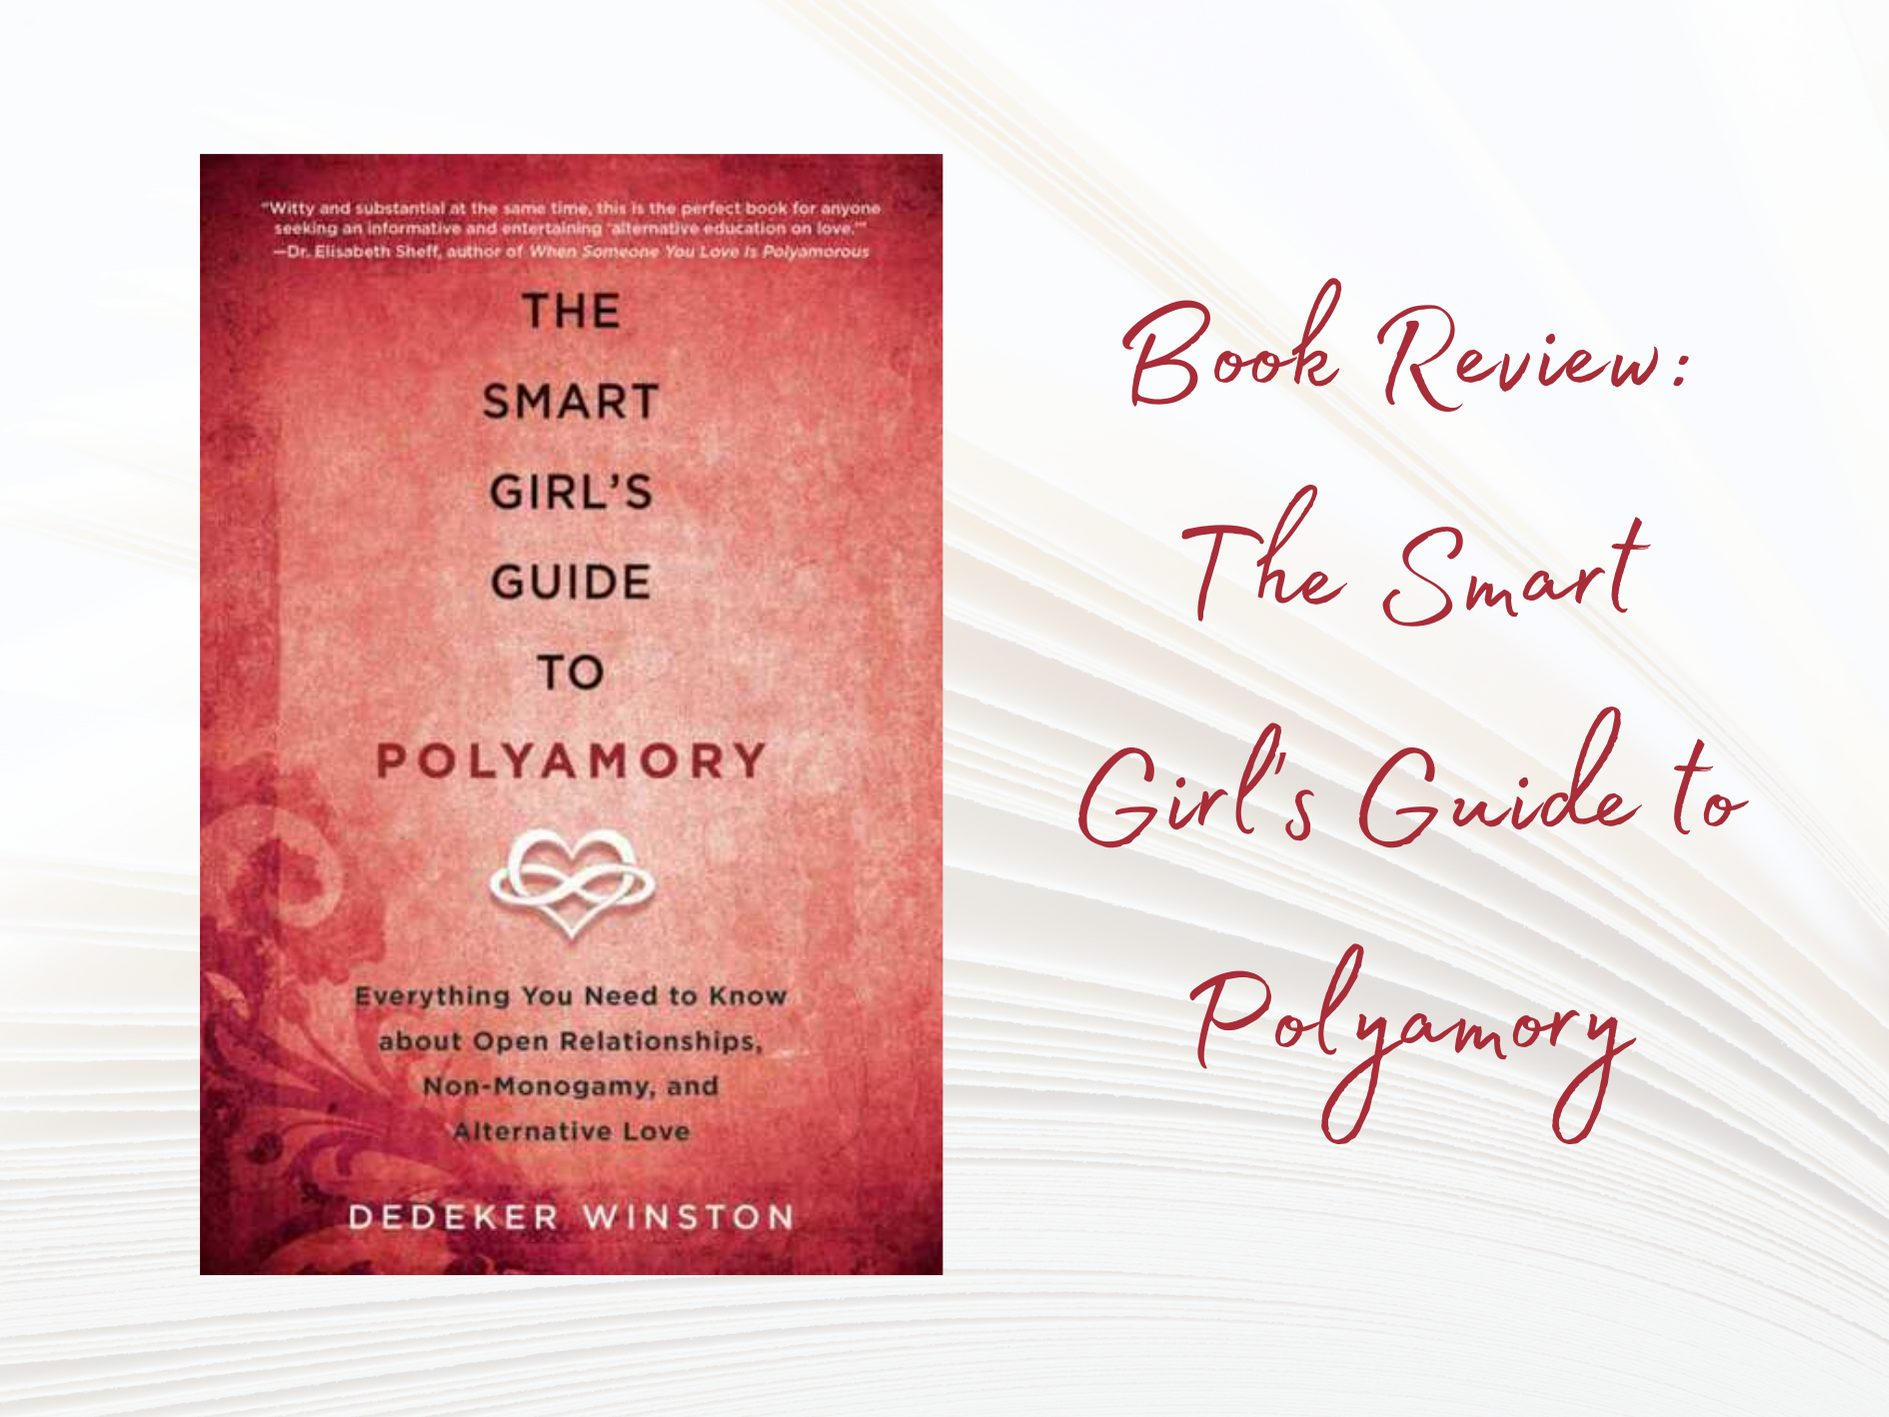 [Book Review] The Smart Girl's Guide to Polyamory by Dedeker Winston